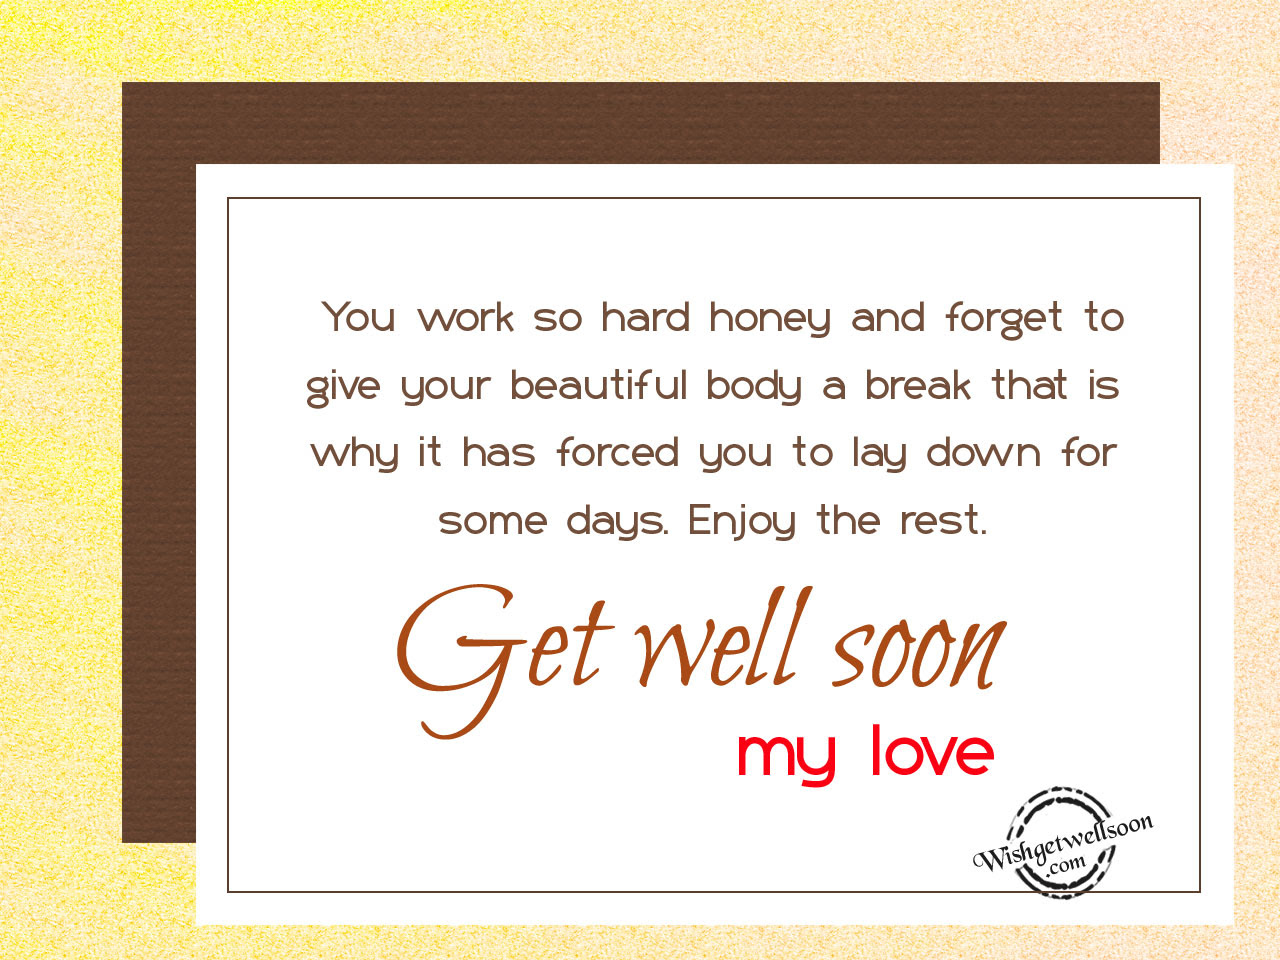 Get Well Soon Wishes For Husband Pictures Images Page 2